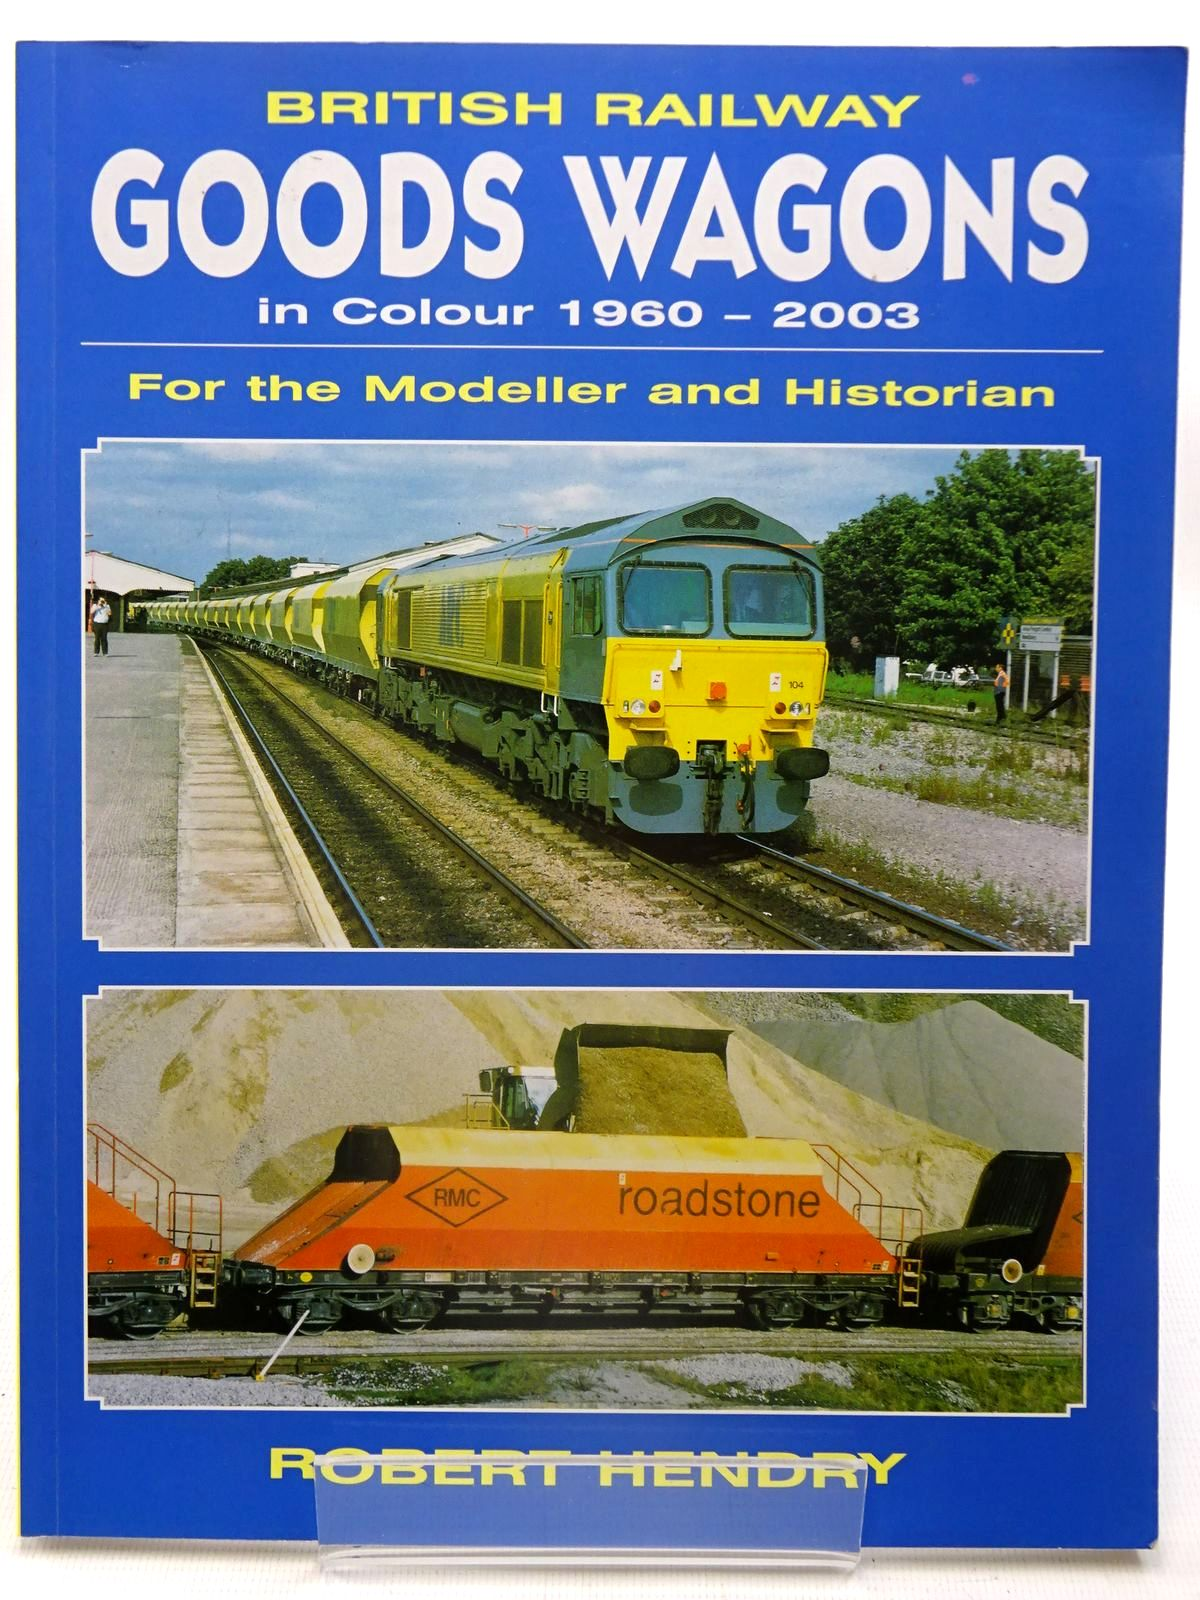 Photo of BRITISH RAILWAY GOODS WAGONS IN COLOUR 1960 - 2003 FOR THE MODELLER AND HISTORIAN written by Hendry, Robert Powell published by Midland Publishing (STOCK CODE: 2126168)  for sale by Stella & Rose's Books